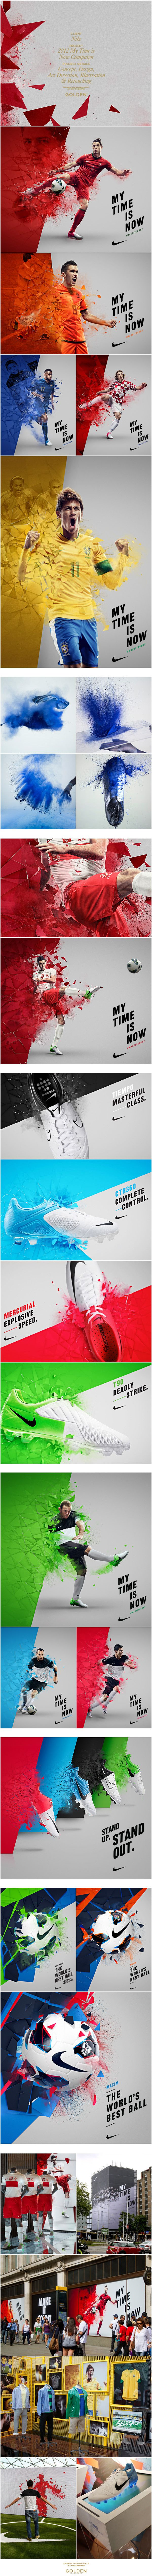 Nike 2012 My Time Is Now Campaign by Golden , via Behance it's time to get this in the US that's what time it is.